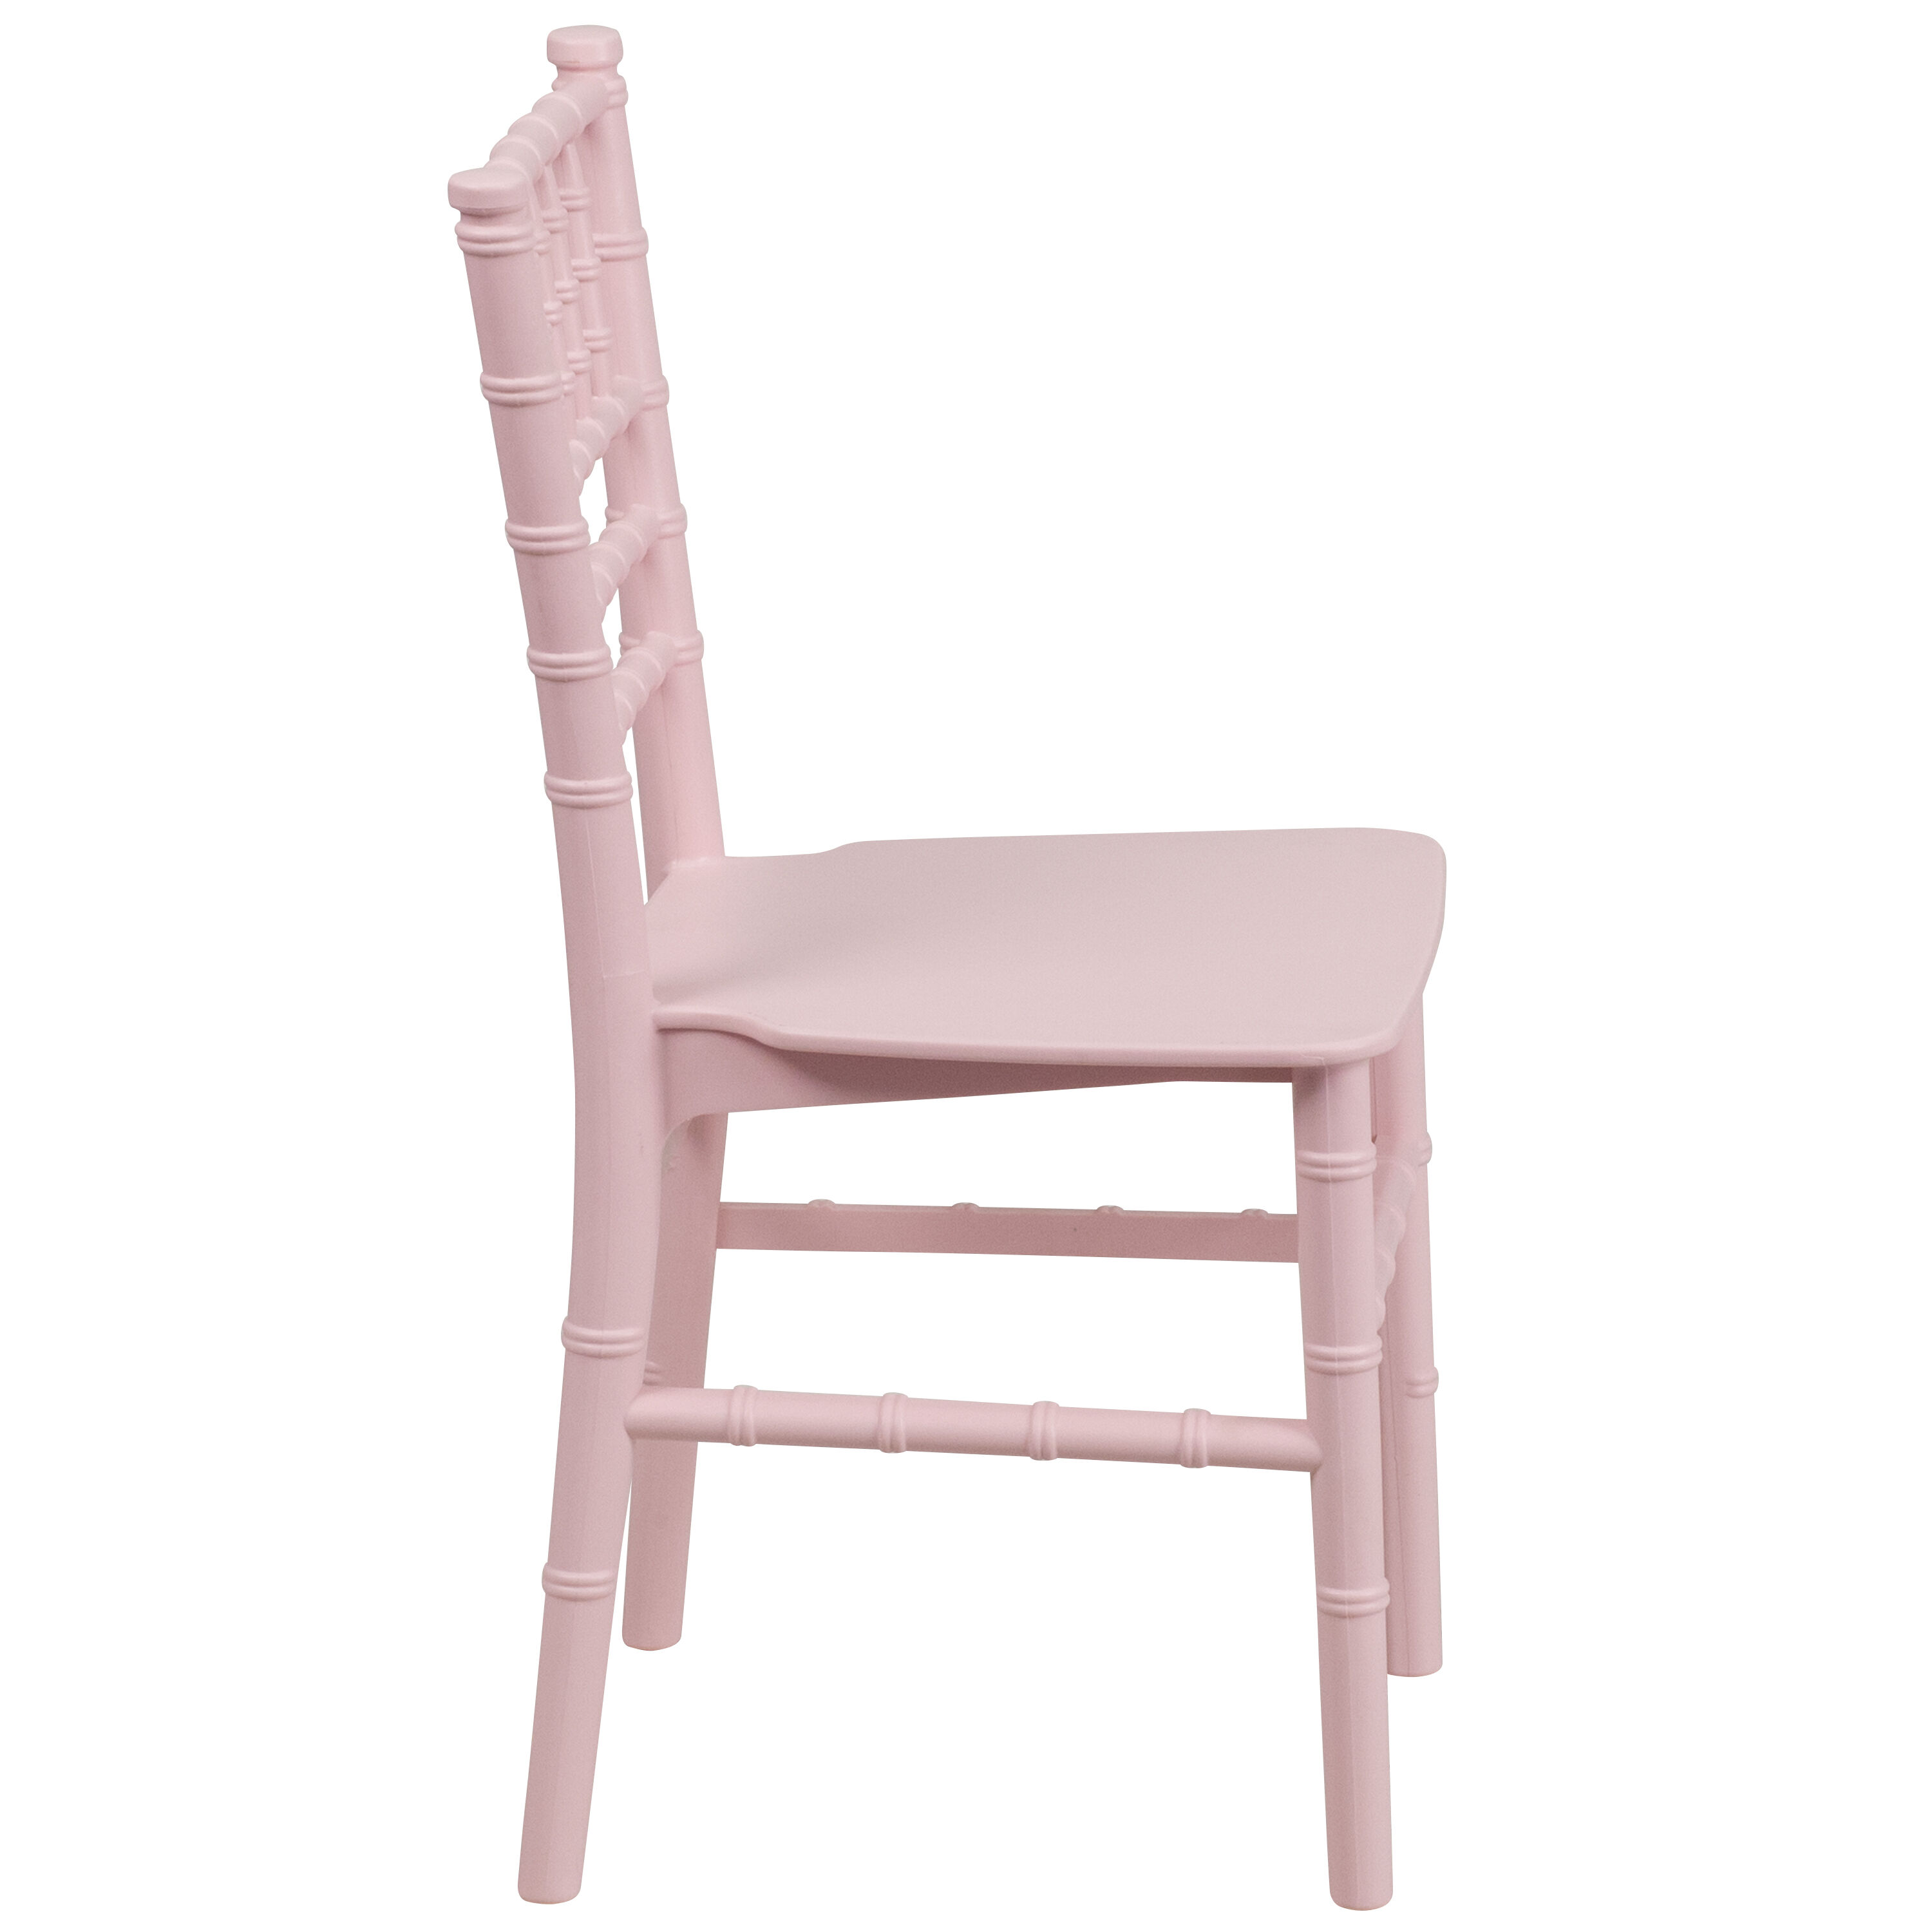 best chiavari chairs bed bath and beyond outdoor chair covers kids pink resin seat le l 7k pk gg